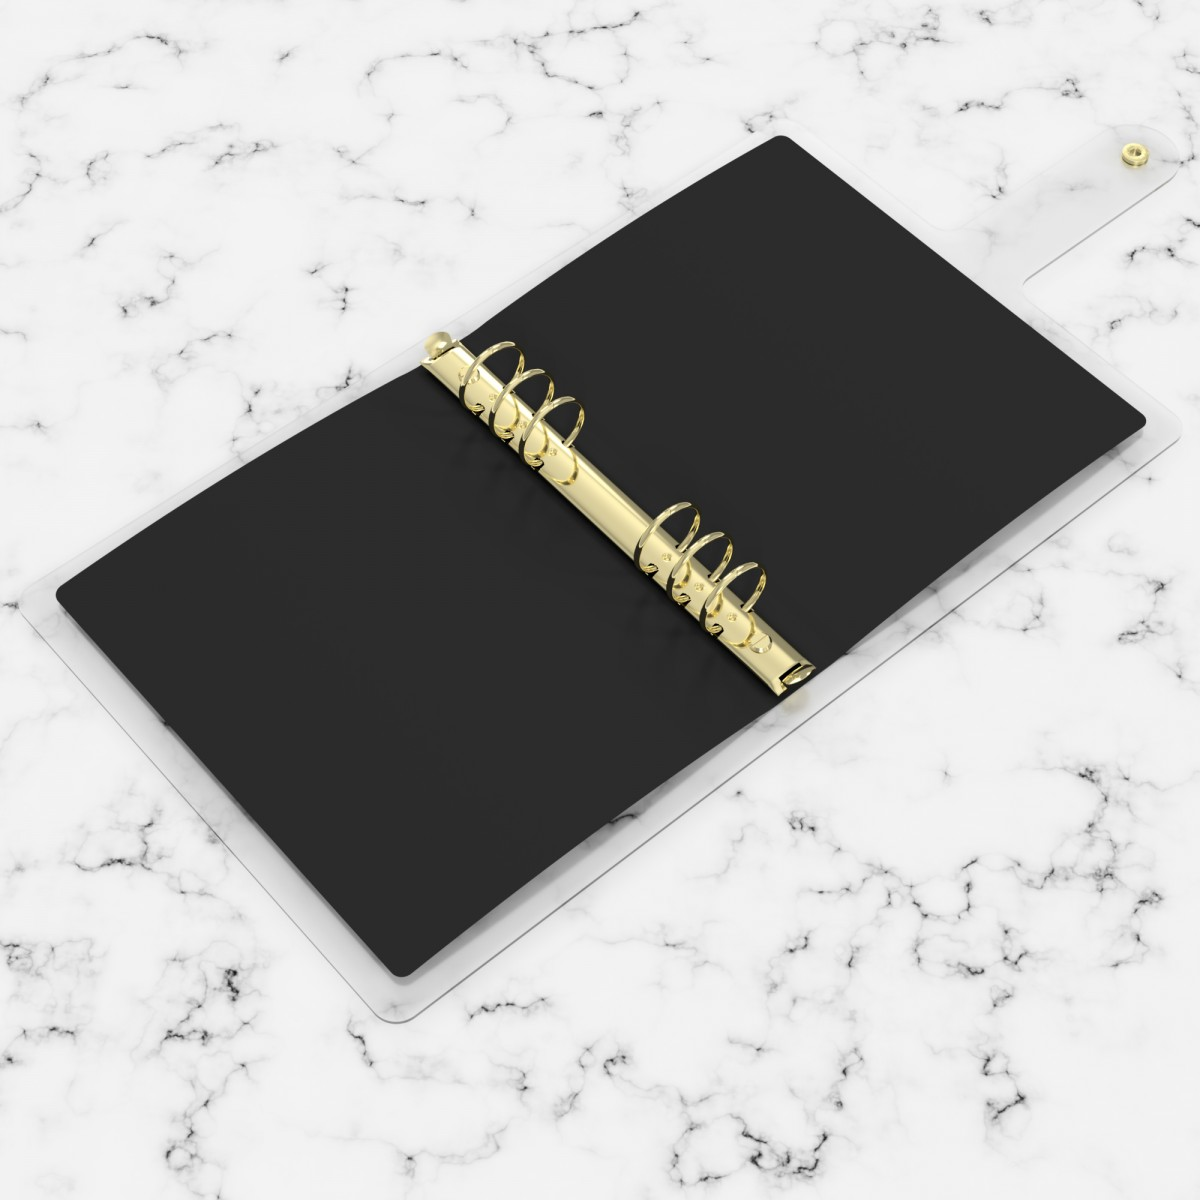 DISCAGENDA CLARITY CLEAR PVC PLANNER COVER - WE NEED MORE TRANSPARENCY (BLACK), RINGBOUND, A5 SIZE